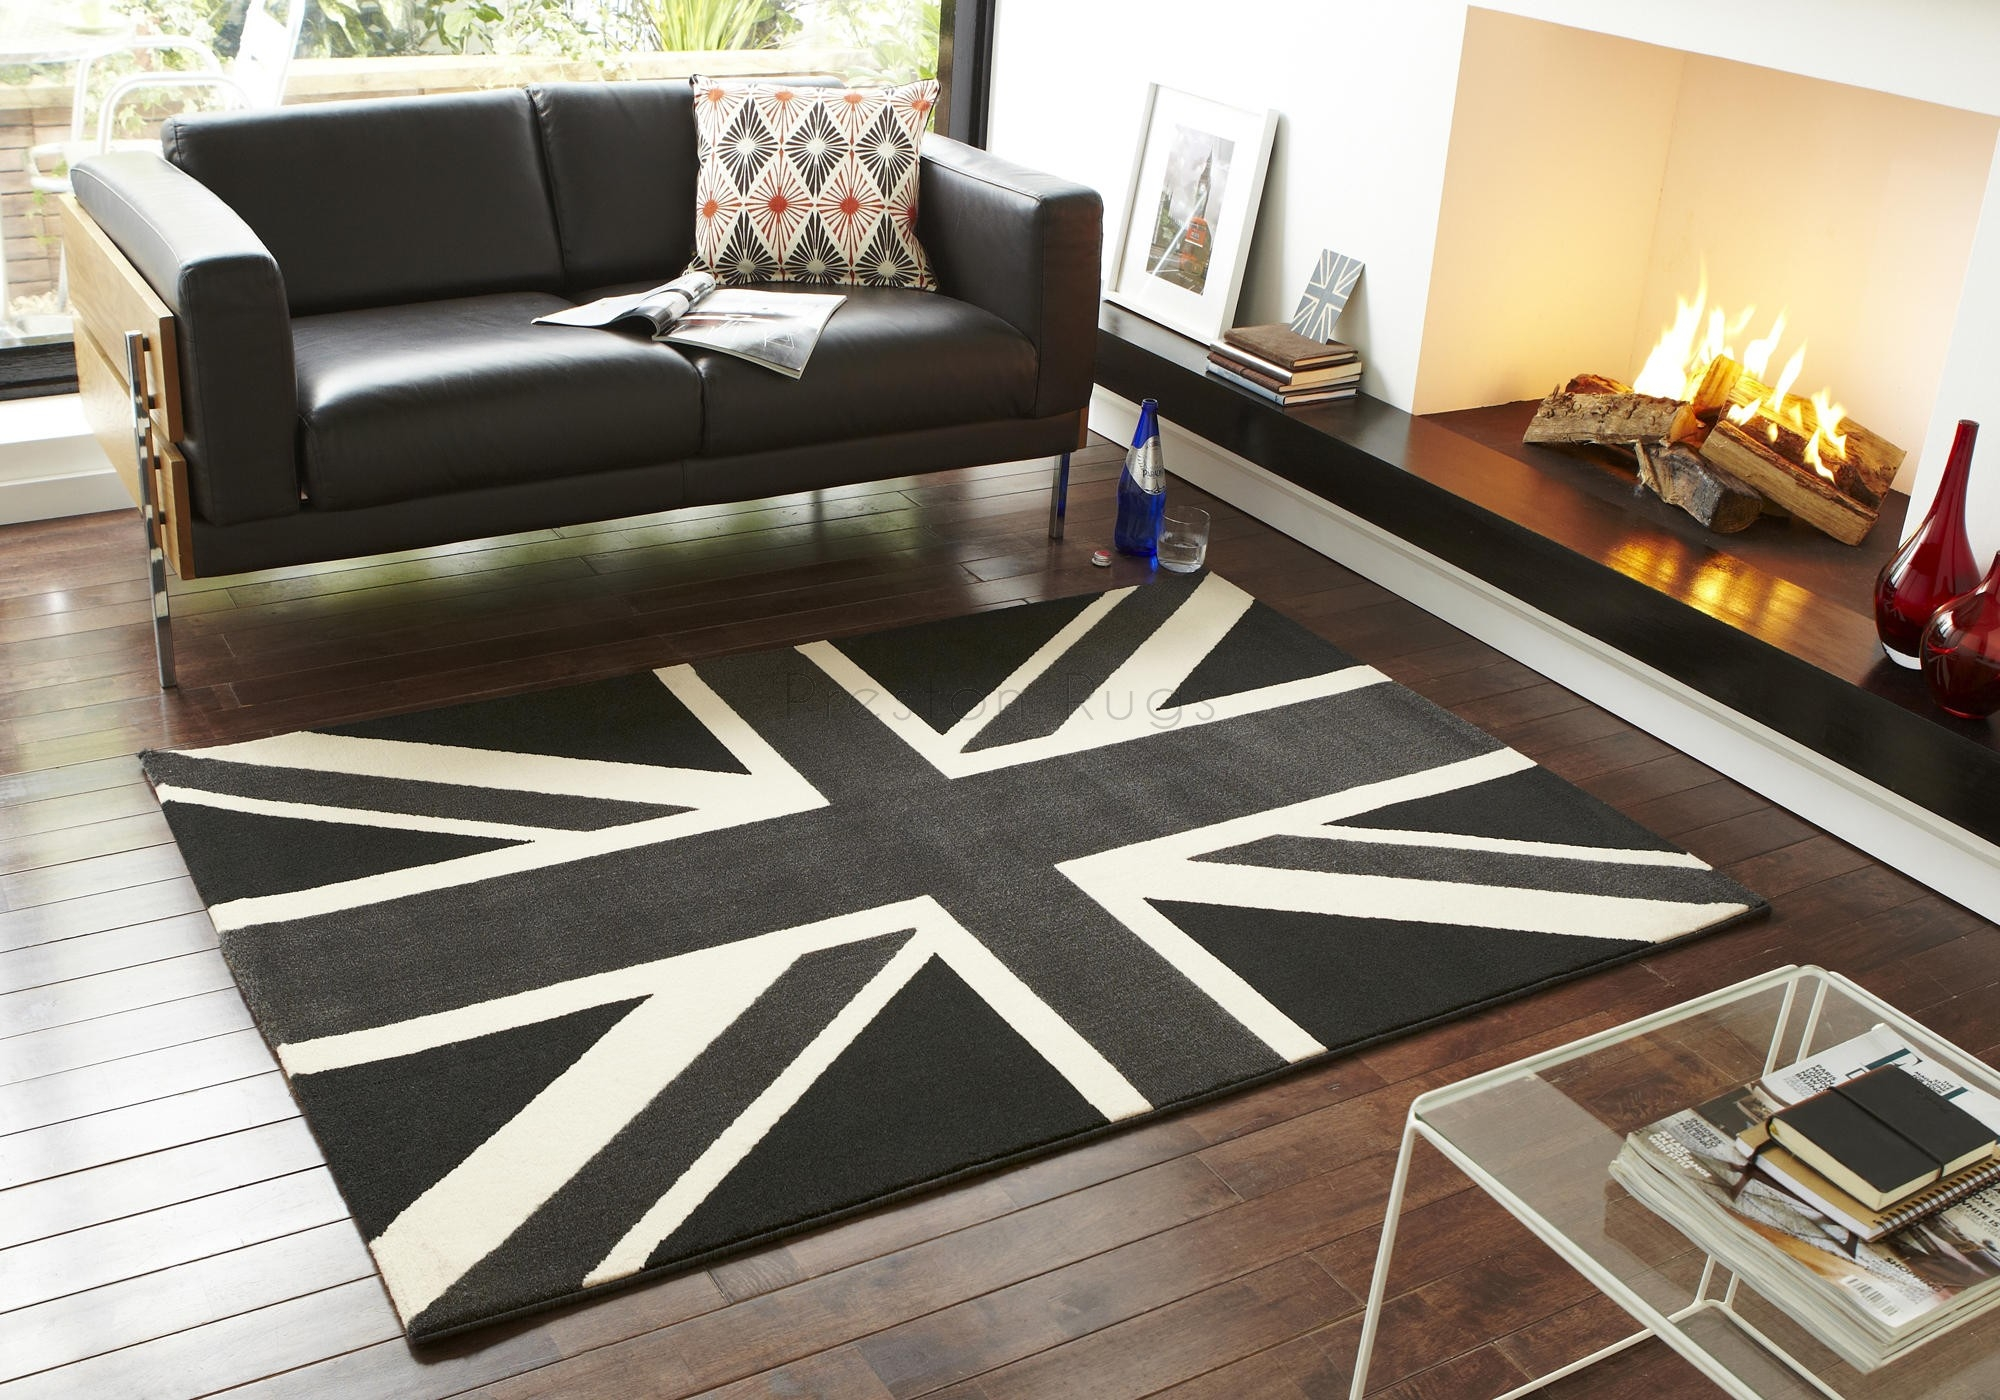 British Flag Rugs Roselawnlutheran In British Flag Rugs (Image 5 of 15)